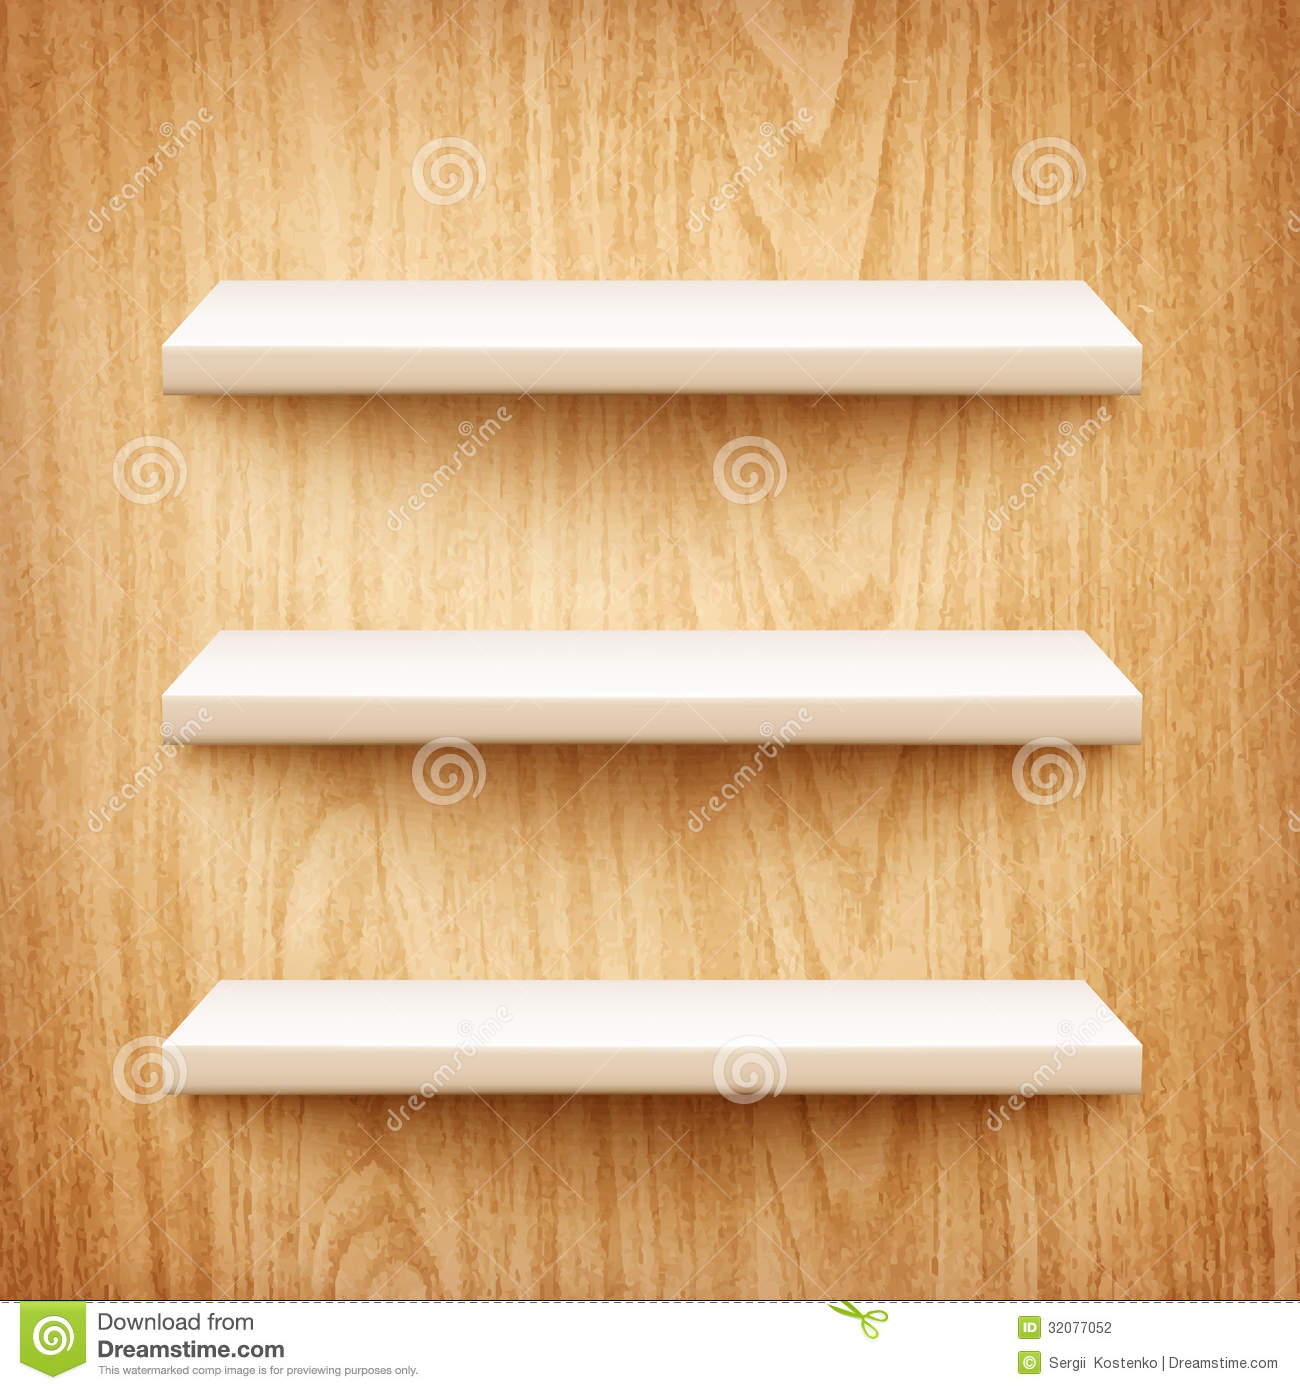 Realistic White Shelves On Wooden Wall Stock Photography ...